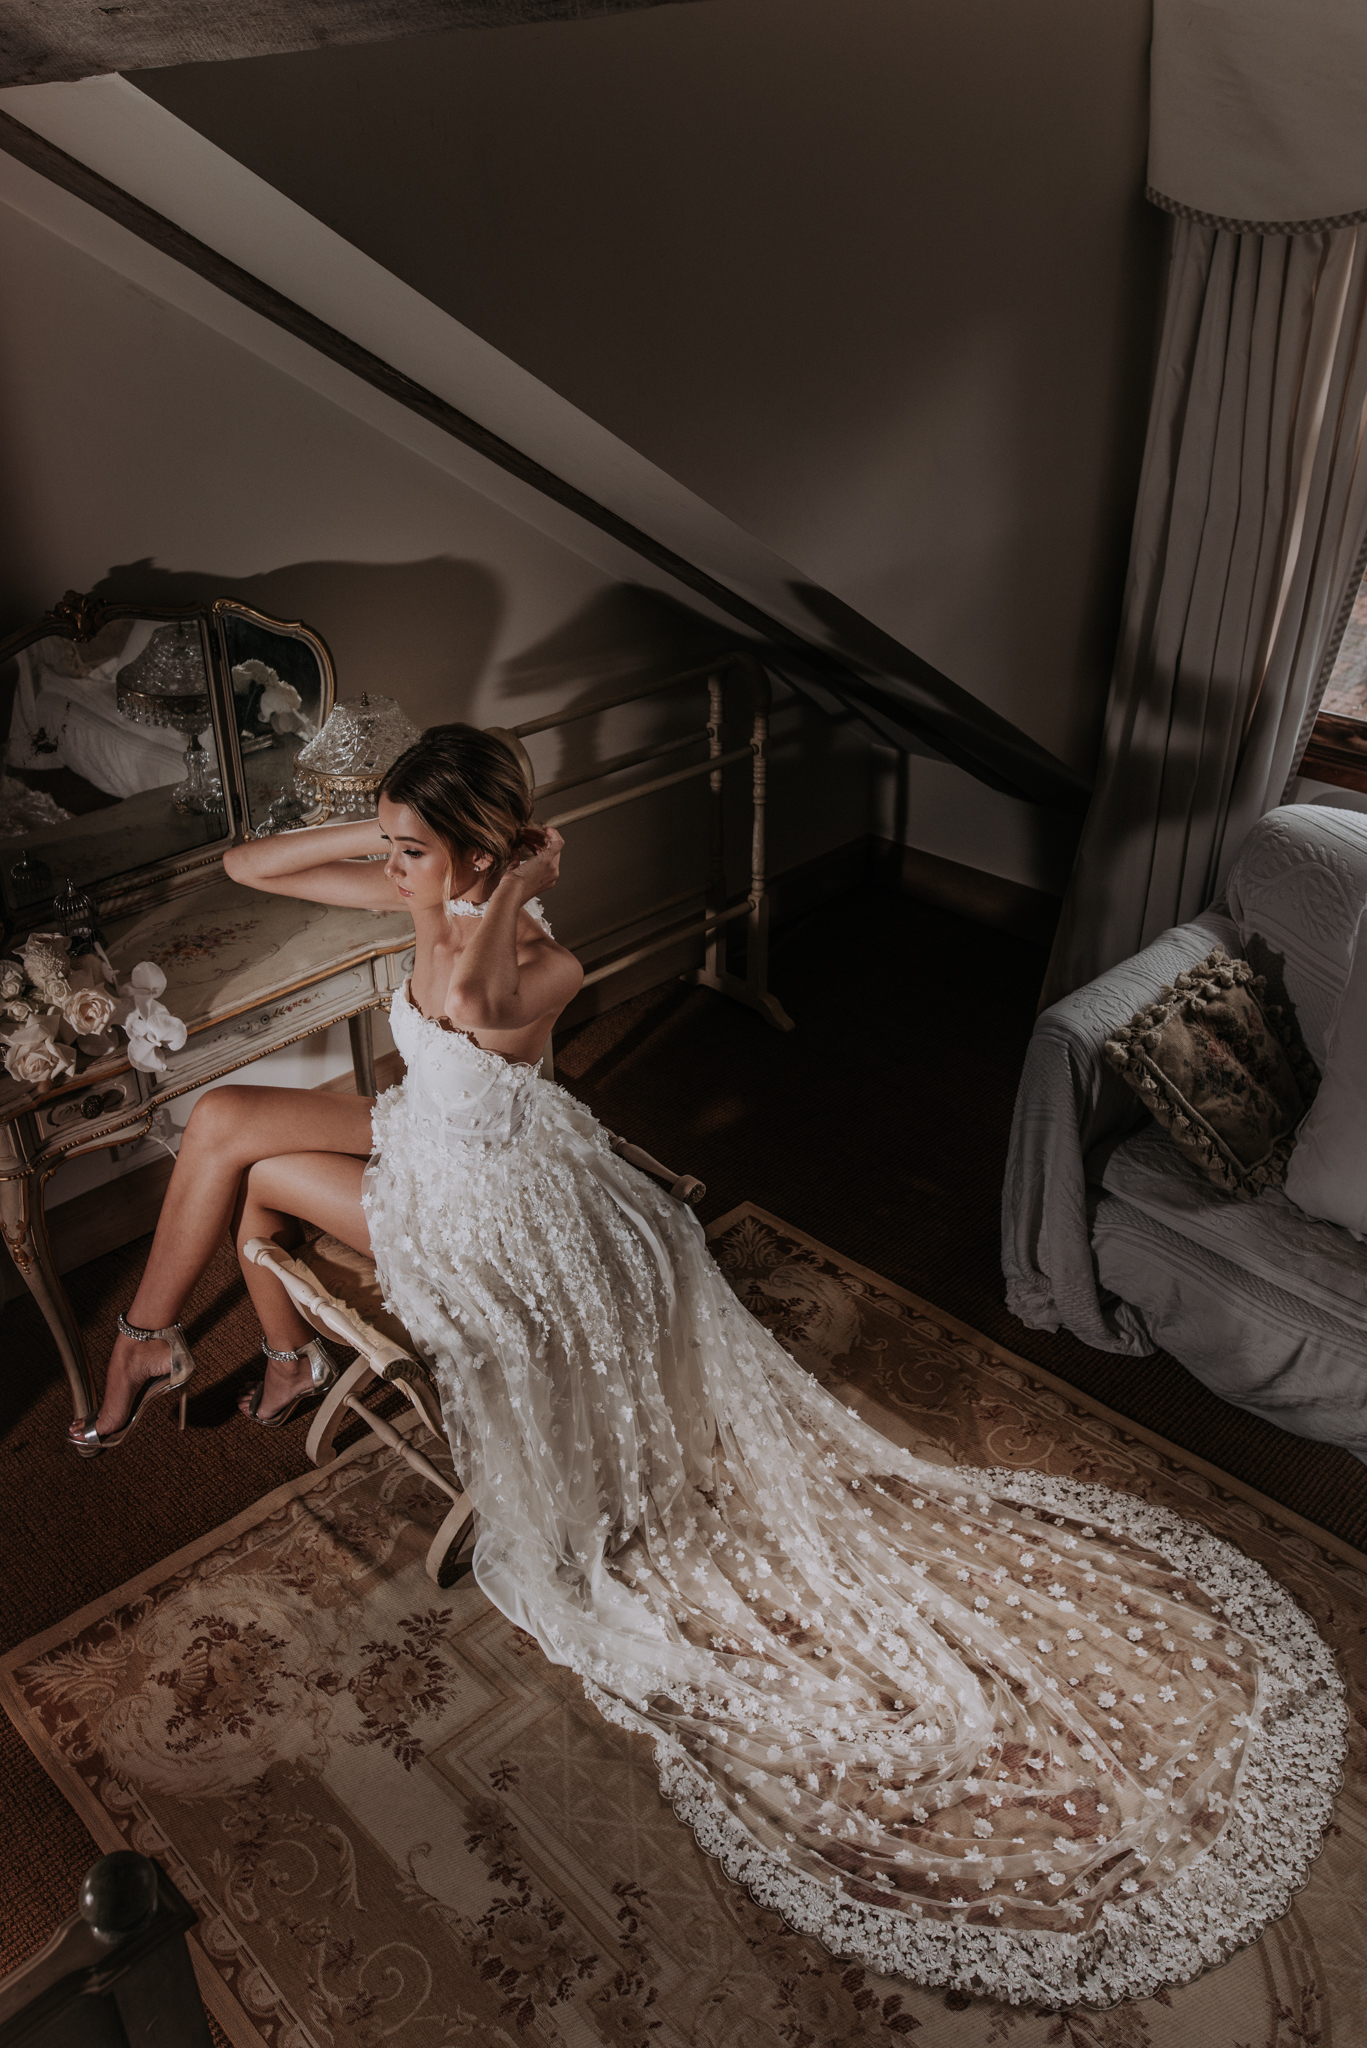 Lovelenscapes Photography X Ulyana Aster Bridal • Les Deux Belettes • Leigh McCoy • Bloodwood Botanica • Alena Iano • Alisa Rudnev • Demi Groot • Jessie Lockley • Maddison Ruby • 73.jpg